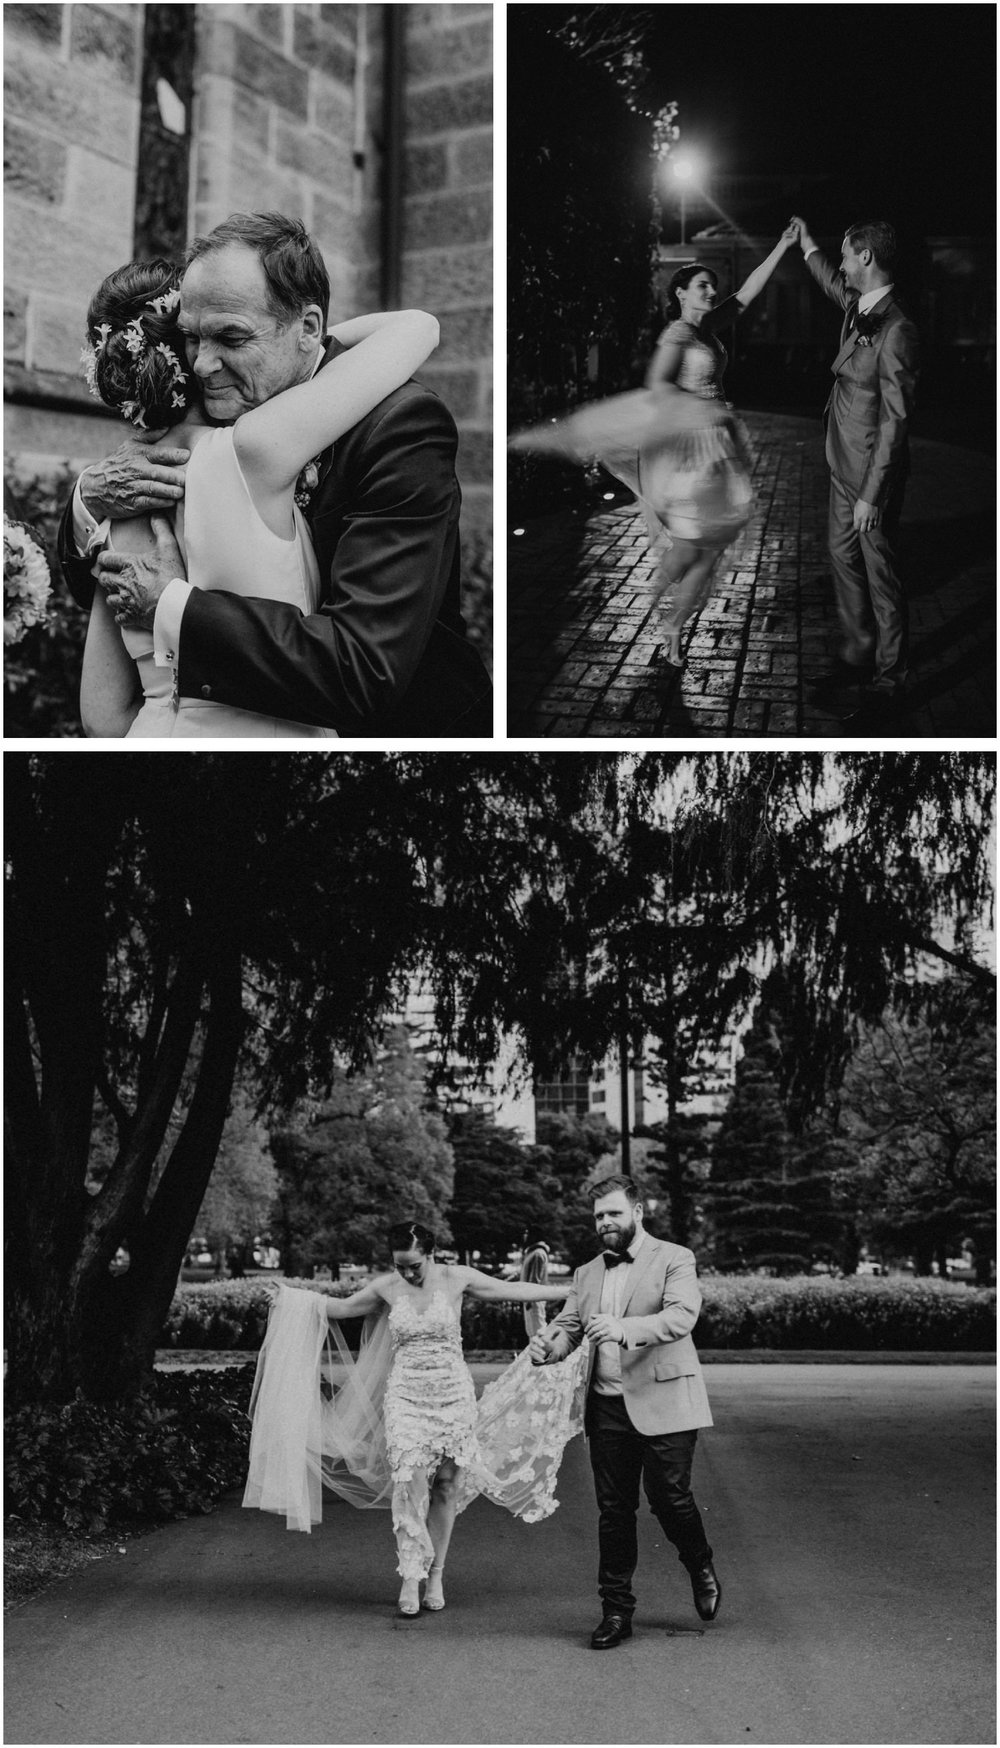 Melbourne Wedding Photographer - 2018 in review -185A7255.jpg